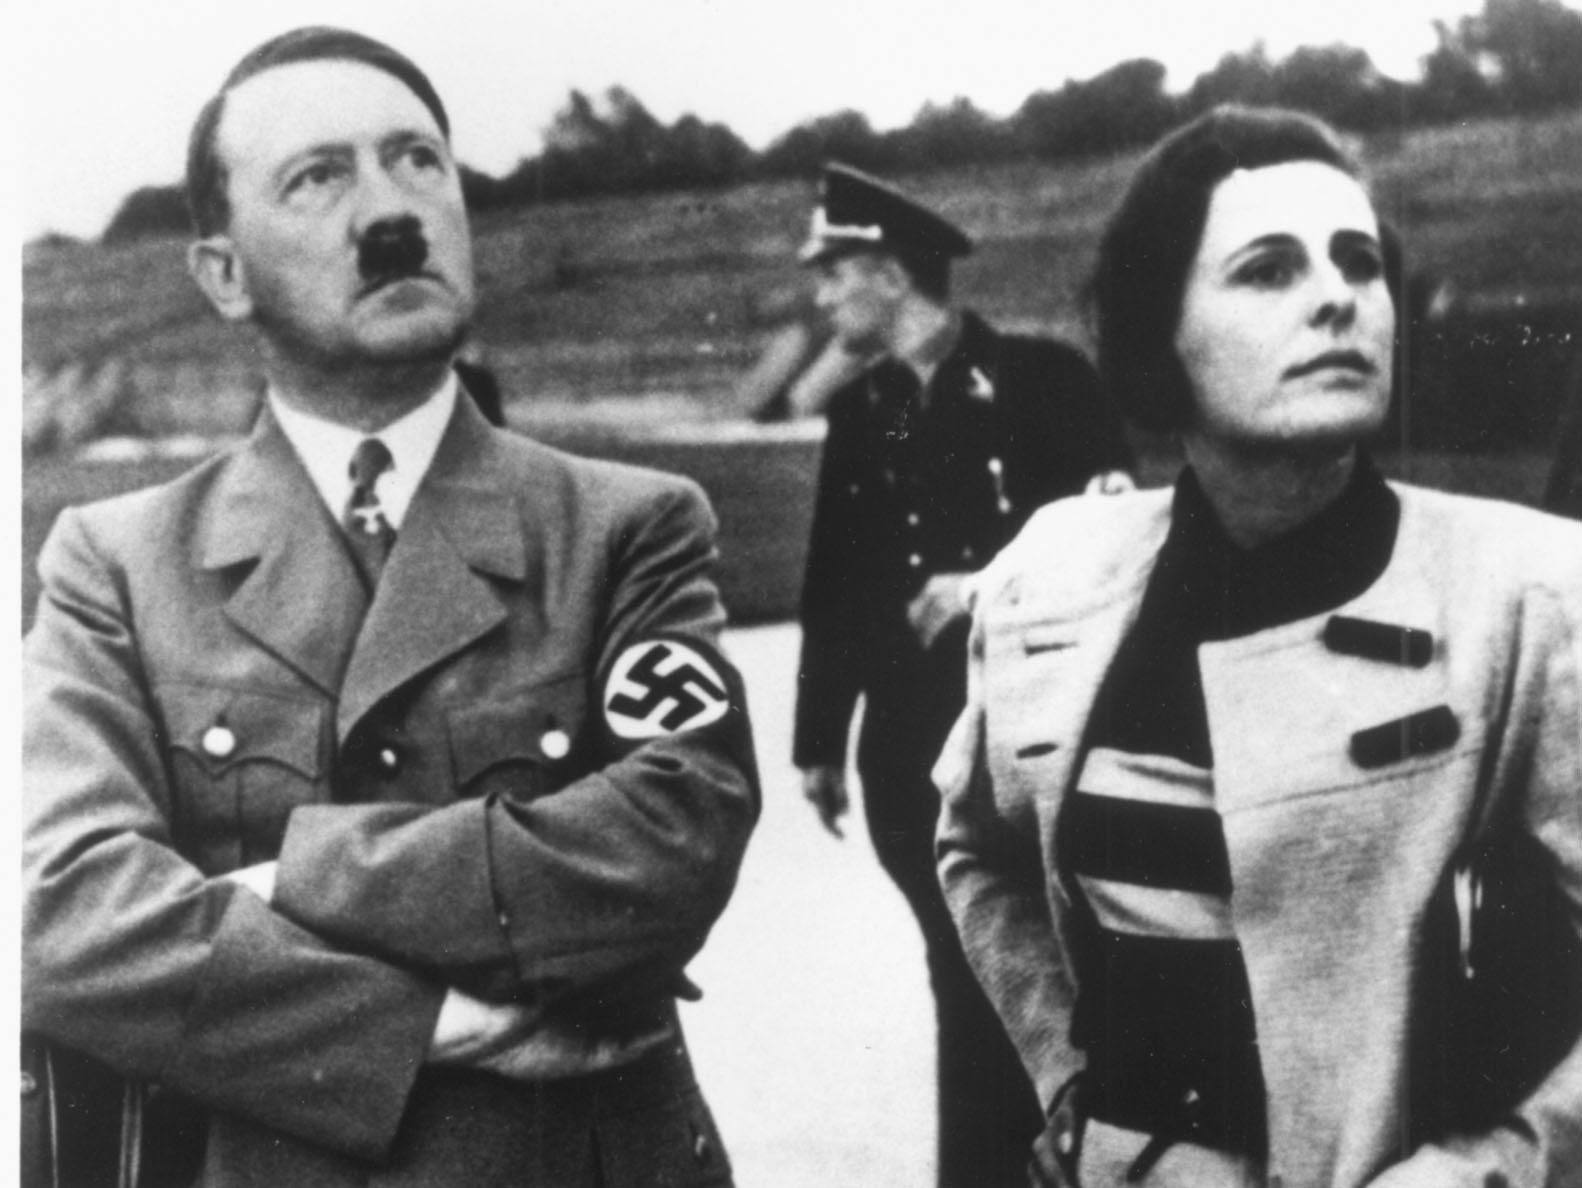 leni riefenstahl nazi sympathiser or creator Leni riefenstahl was a german film director notorious for making the most effective nazi propaganda films in this documentary, she addresses her past for the first time on camera.